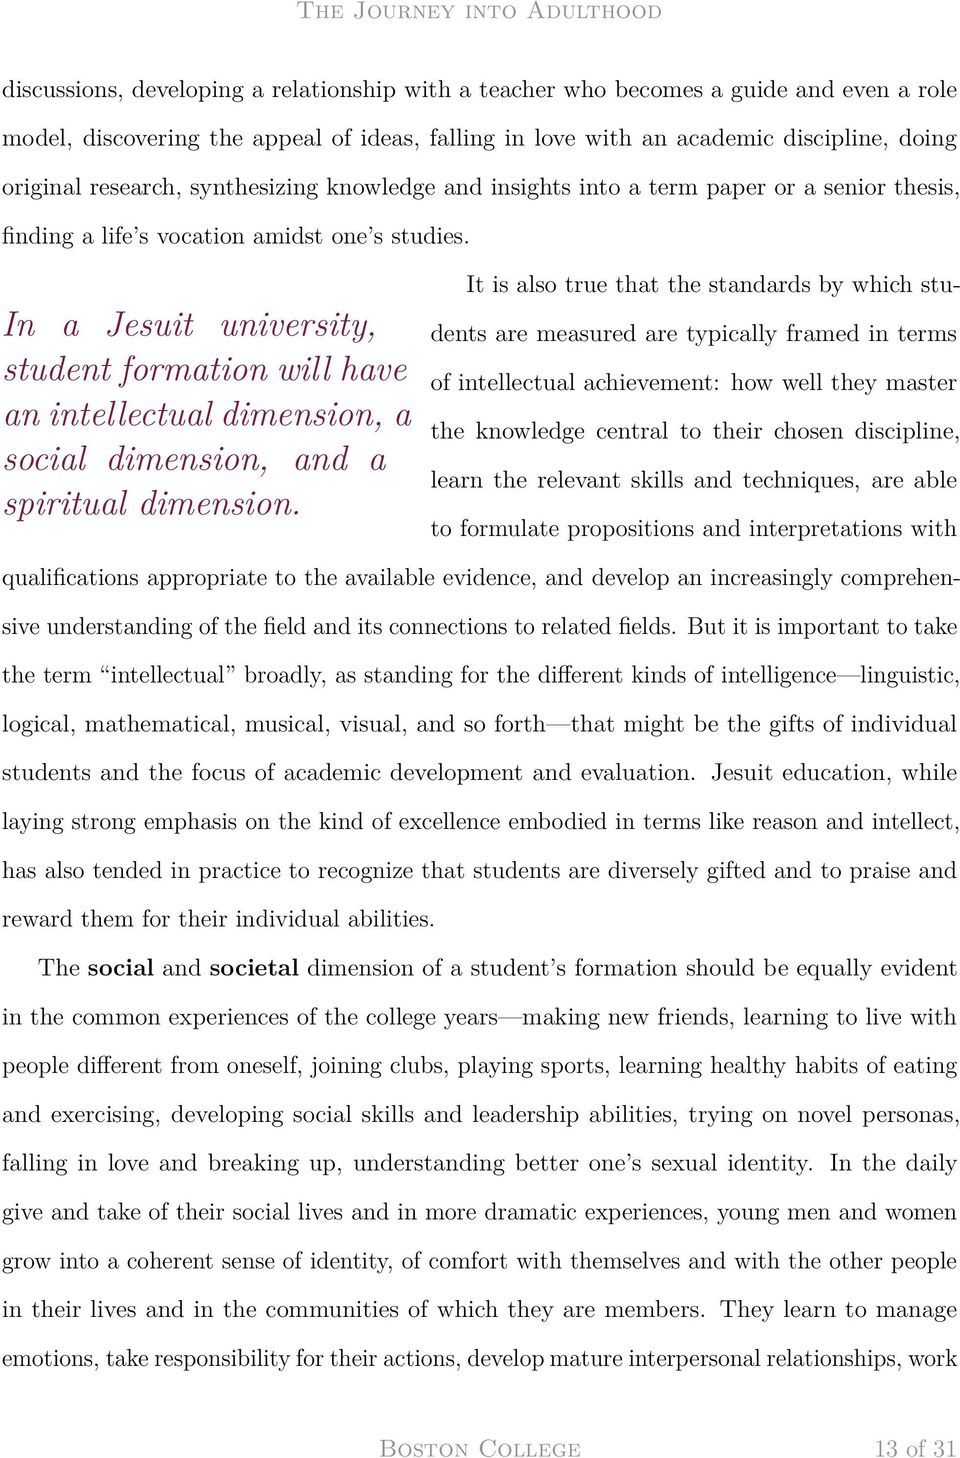 In a Jesuit university, student formation will have an intellectual dimension, a social dimension, and a spiritual dimension.